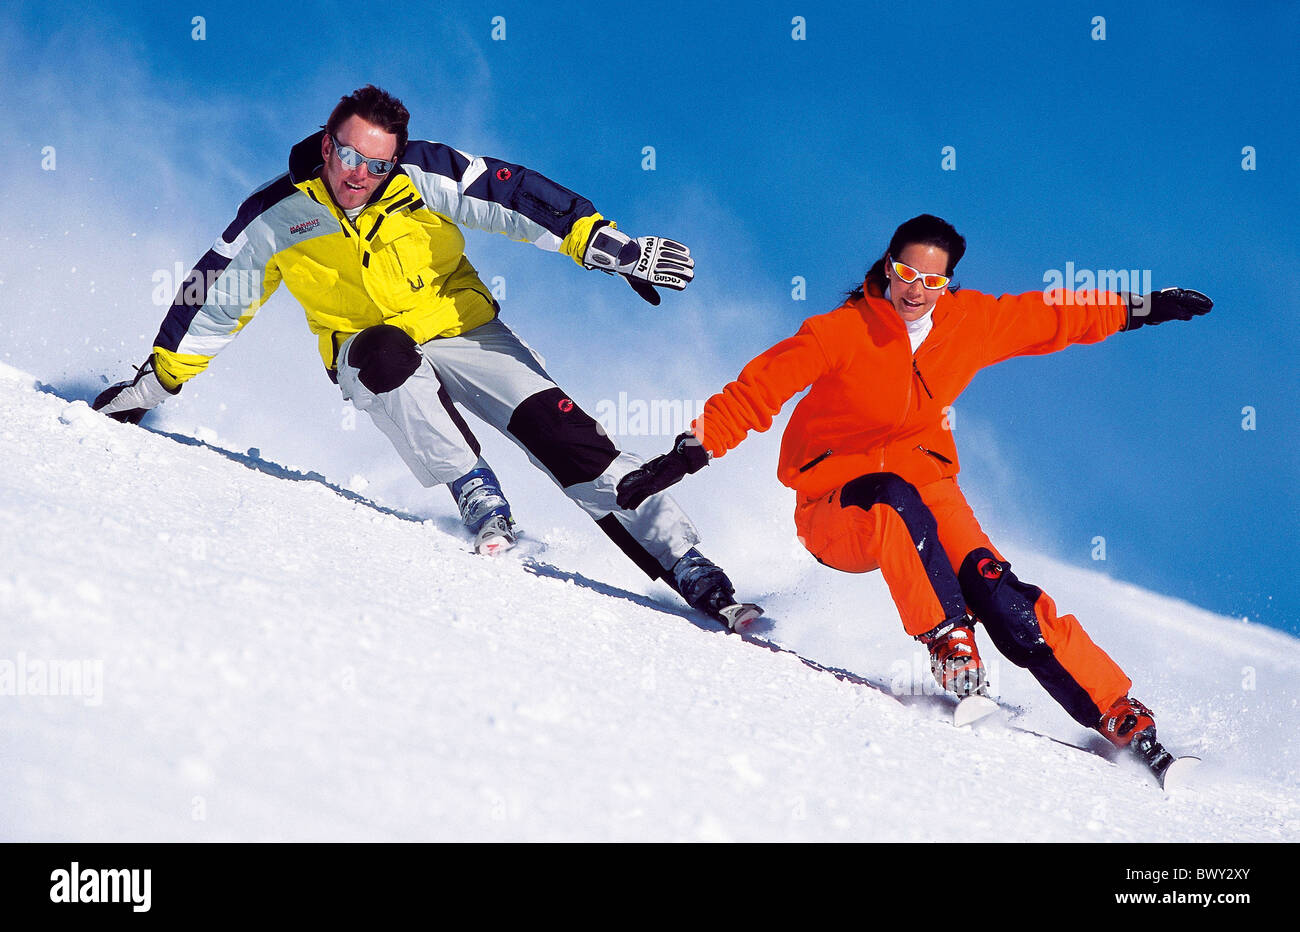 Action carving ski carvingski pair couple snow skiing